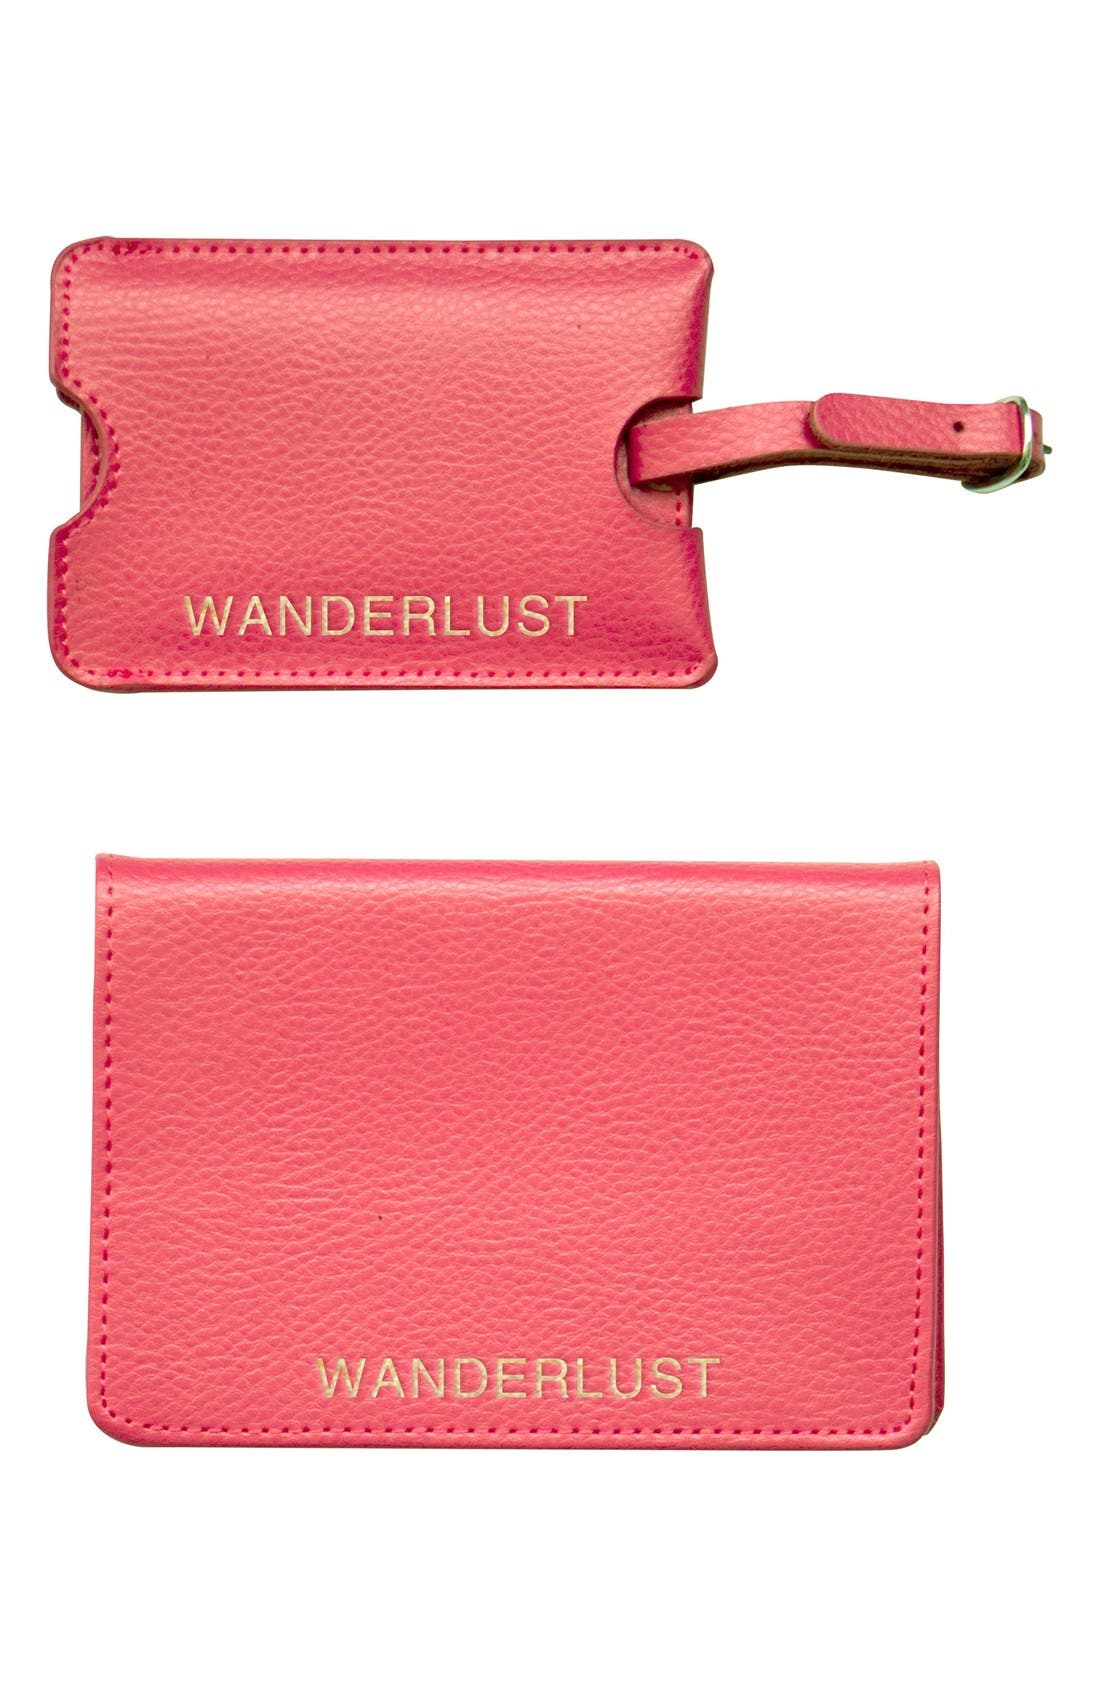 Cathy's Concepts 'Wanderlust' Passport Case & Luggage Tag